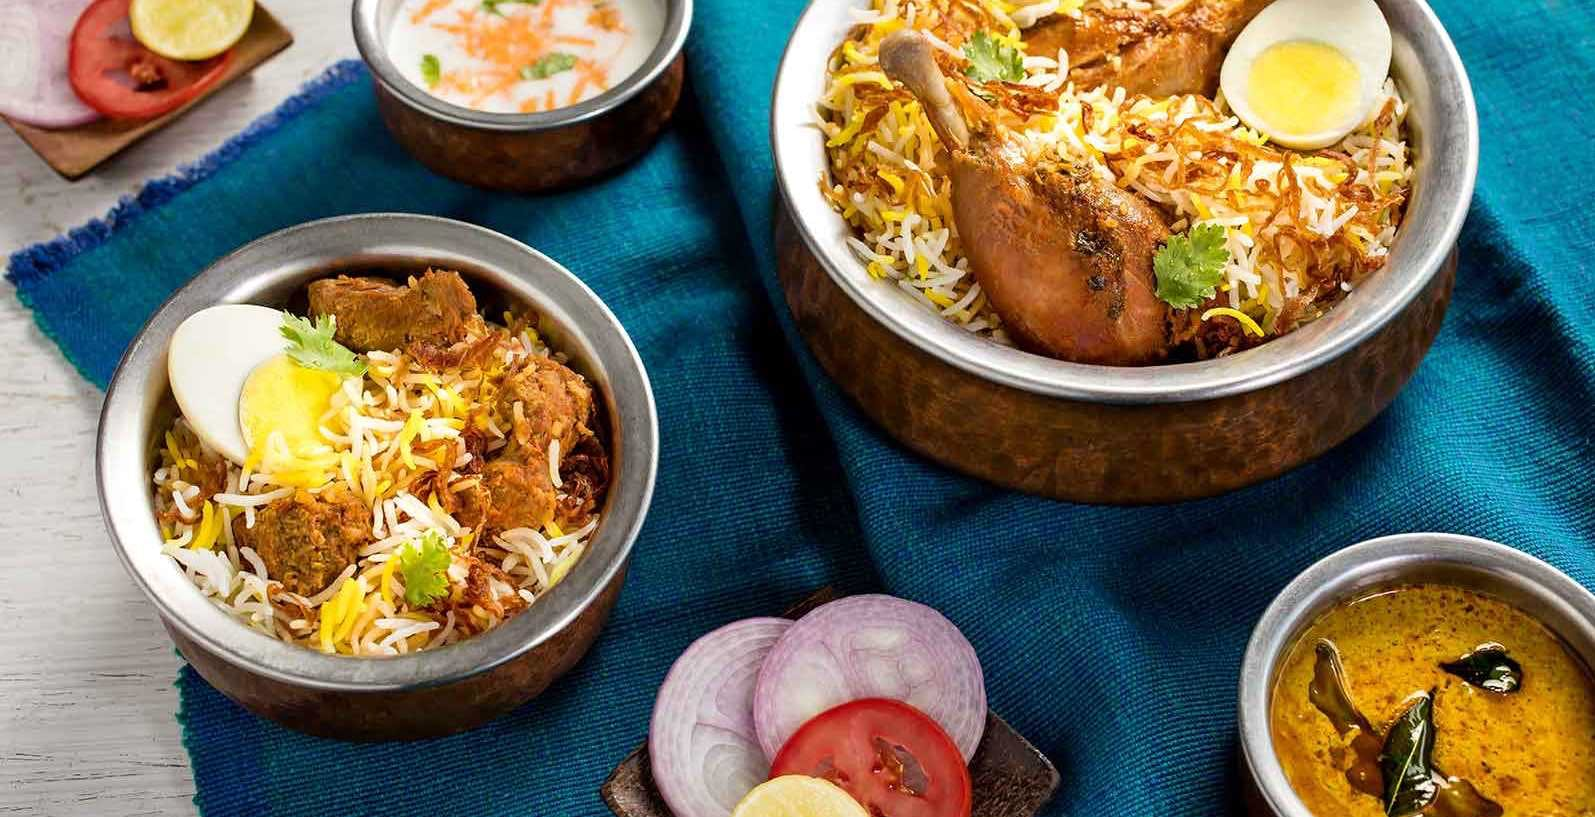 End Of The Month Woes? Enjoy Biryani On A Budget At This Outlet